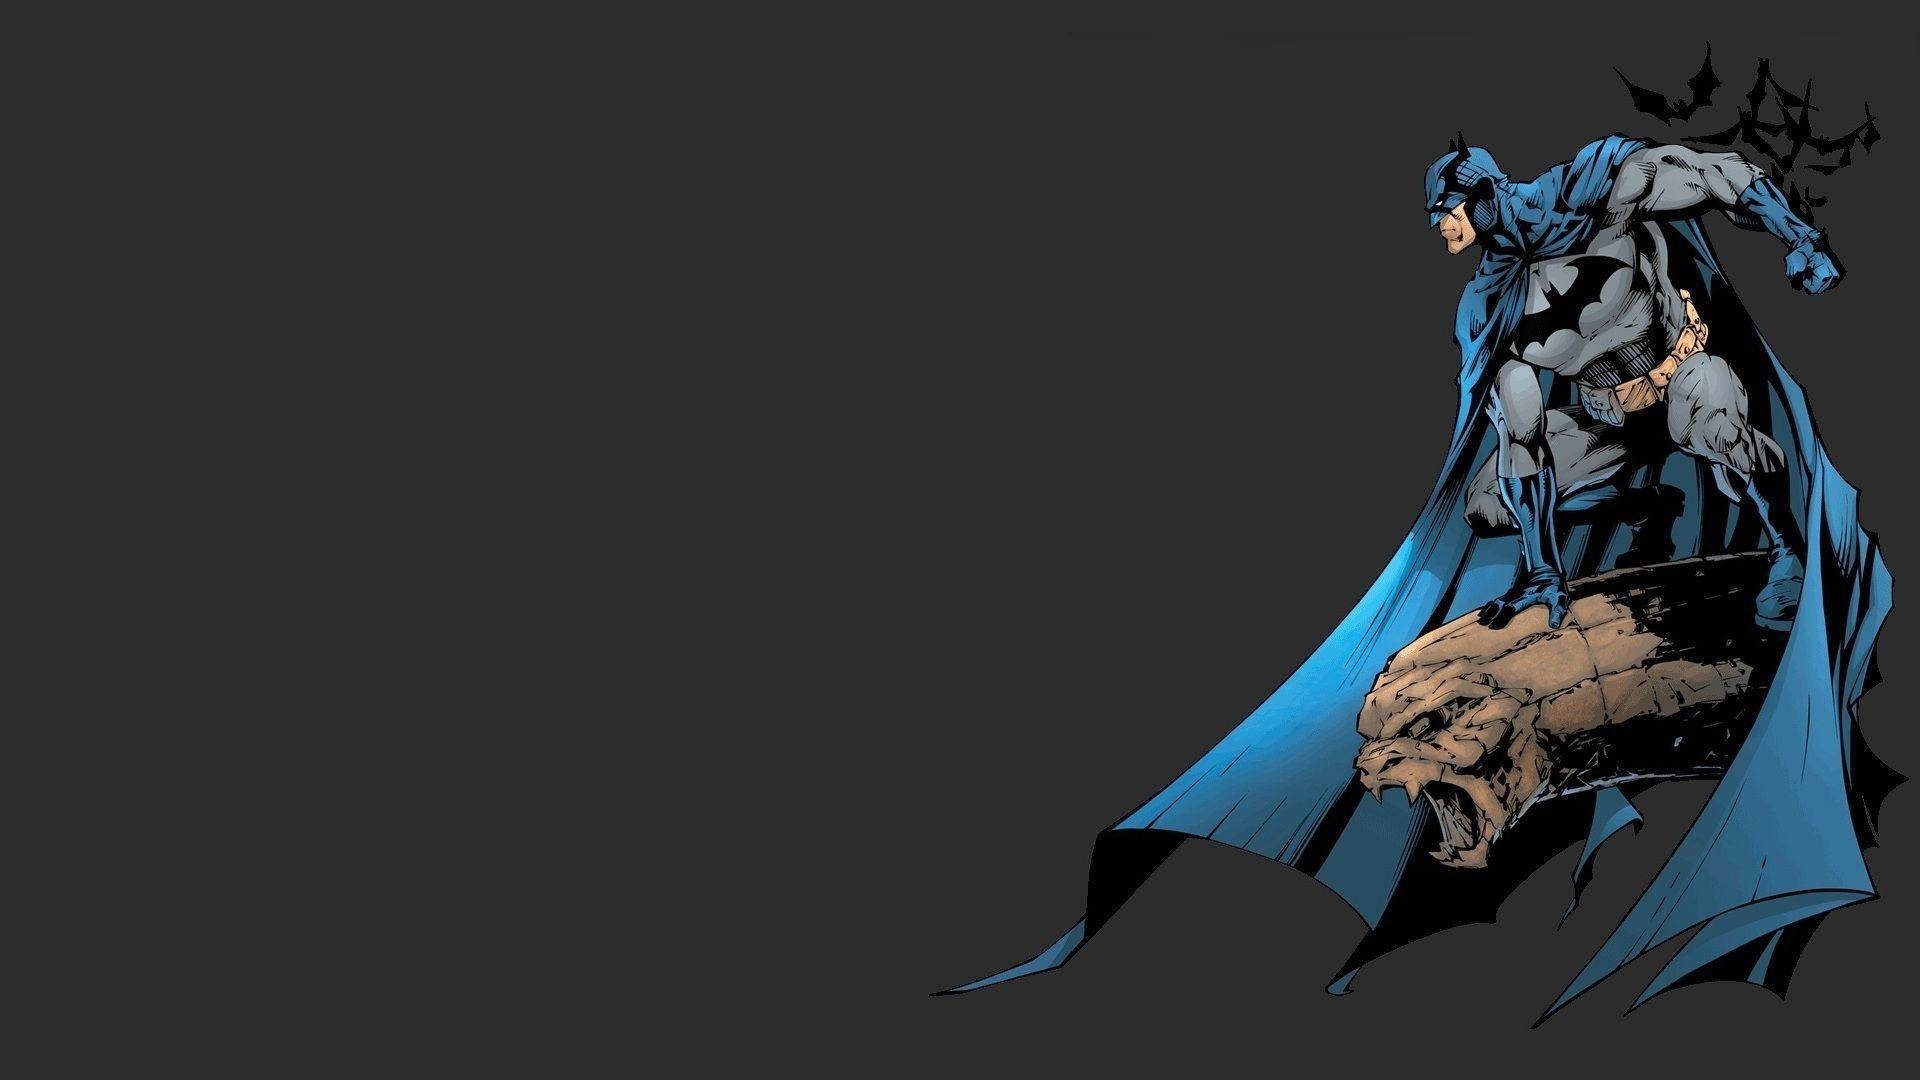 comics batman background hero - photo #1